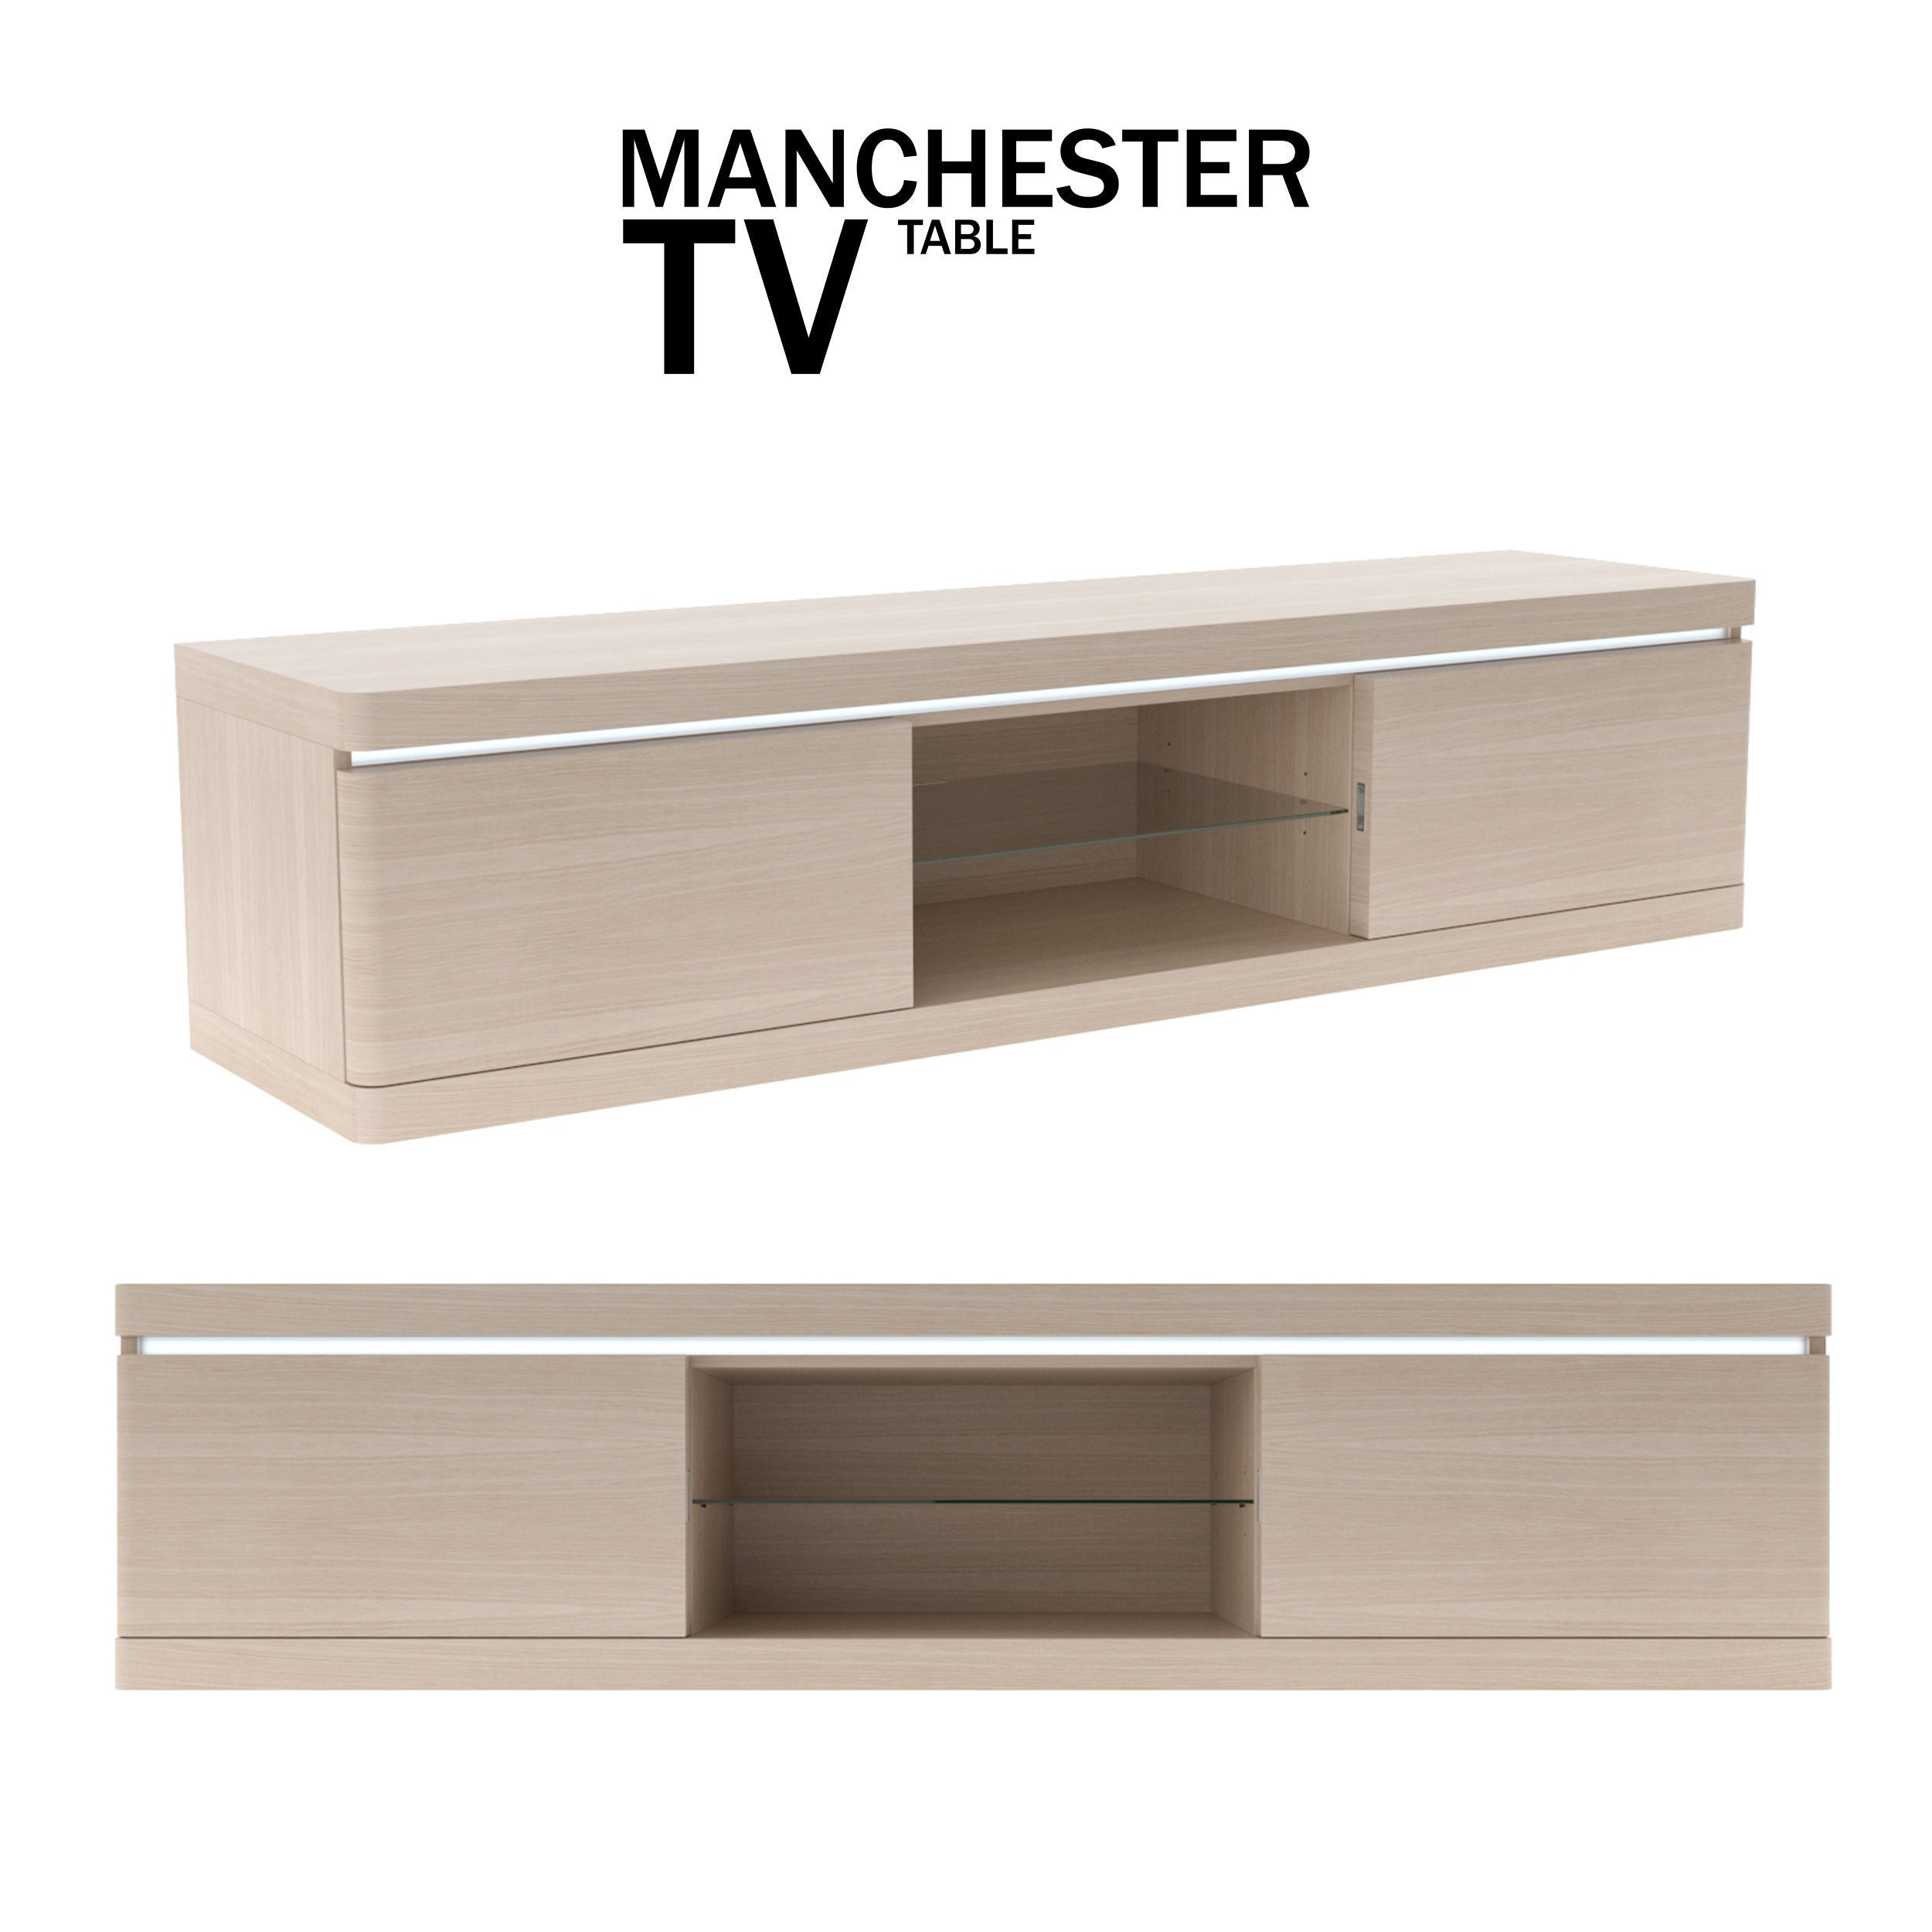 TV TABLE MANCHESTER